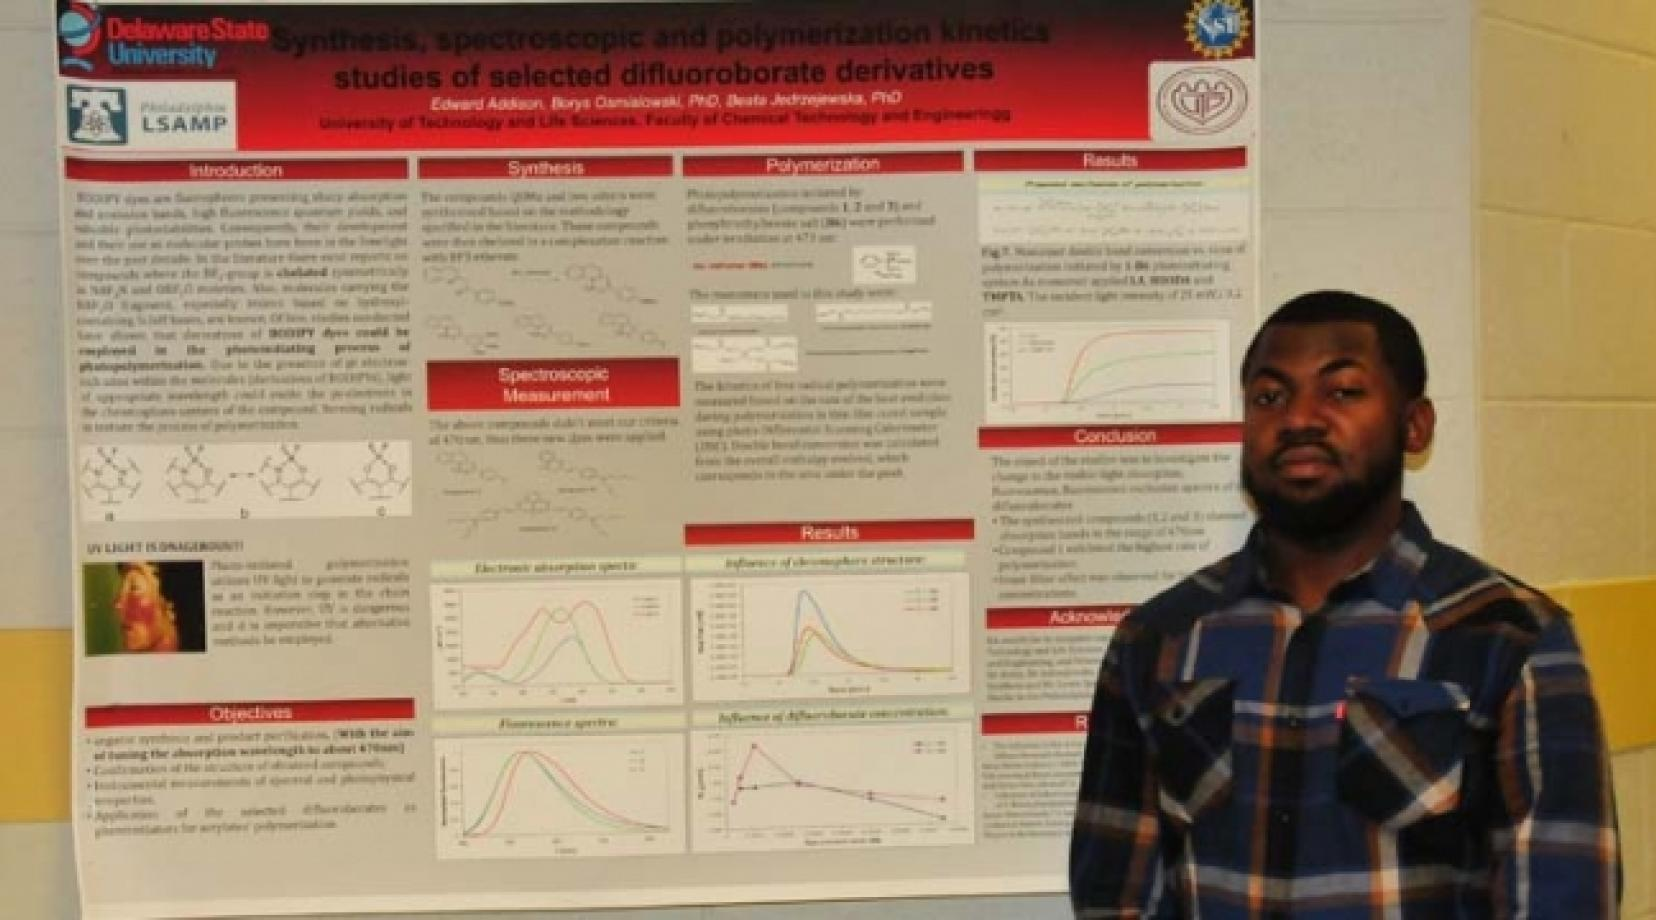 DSU, Research, AMP Conference